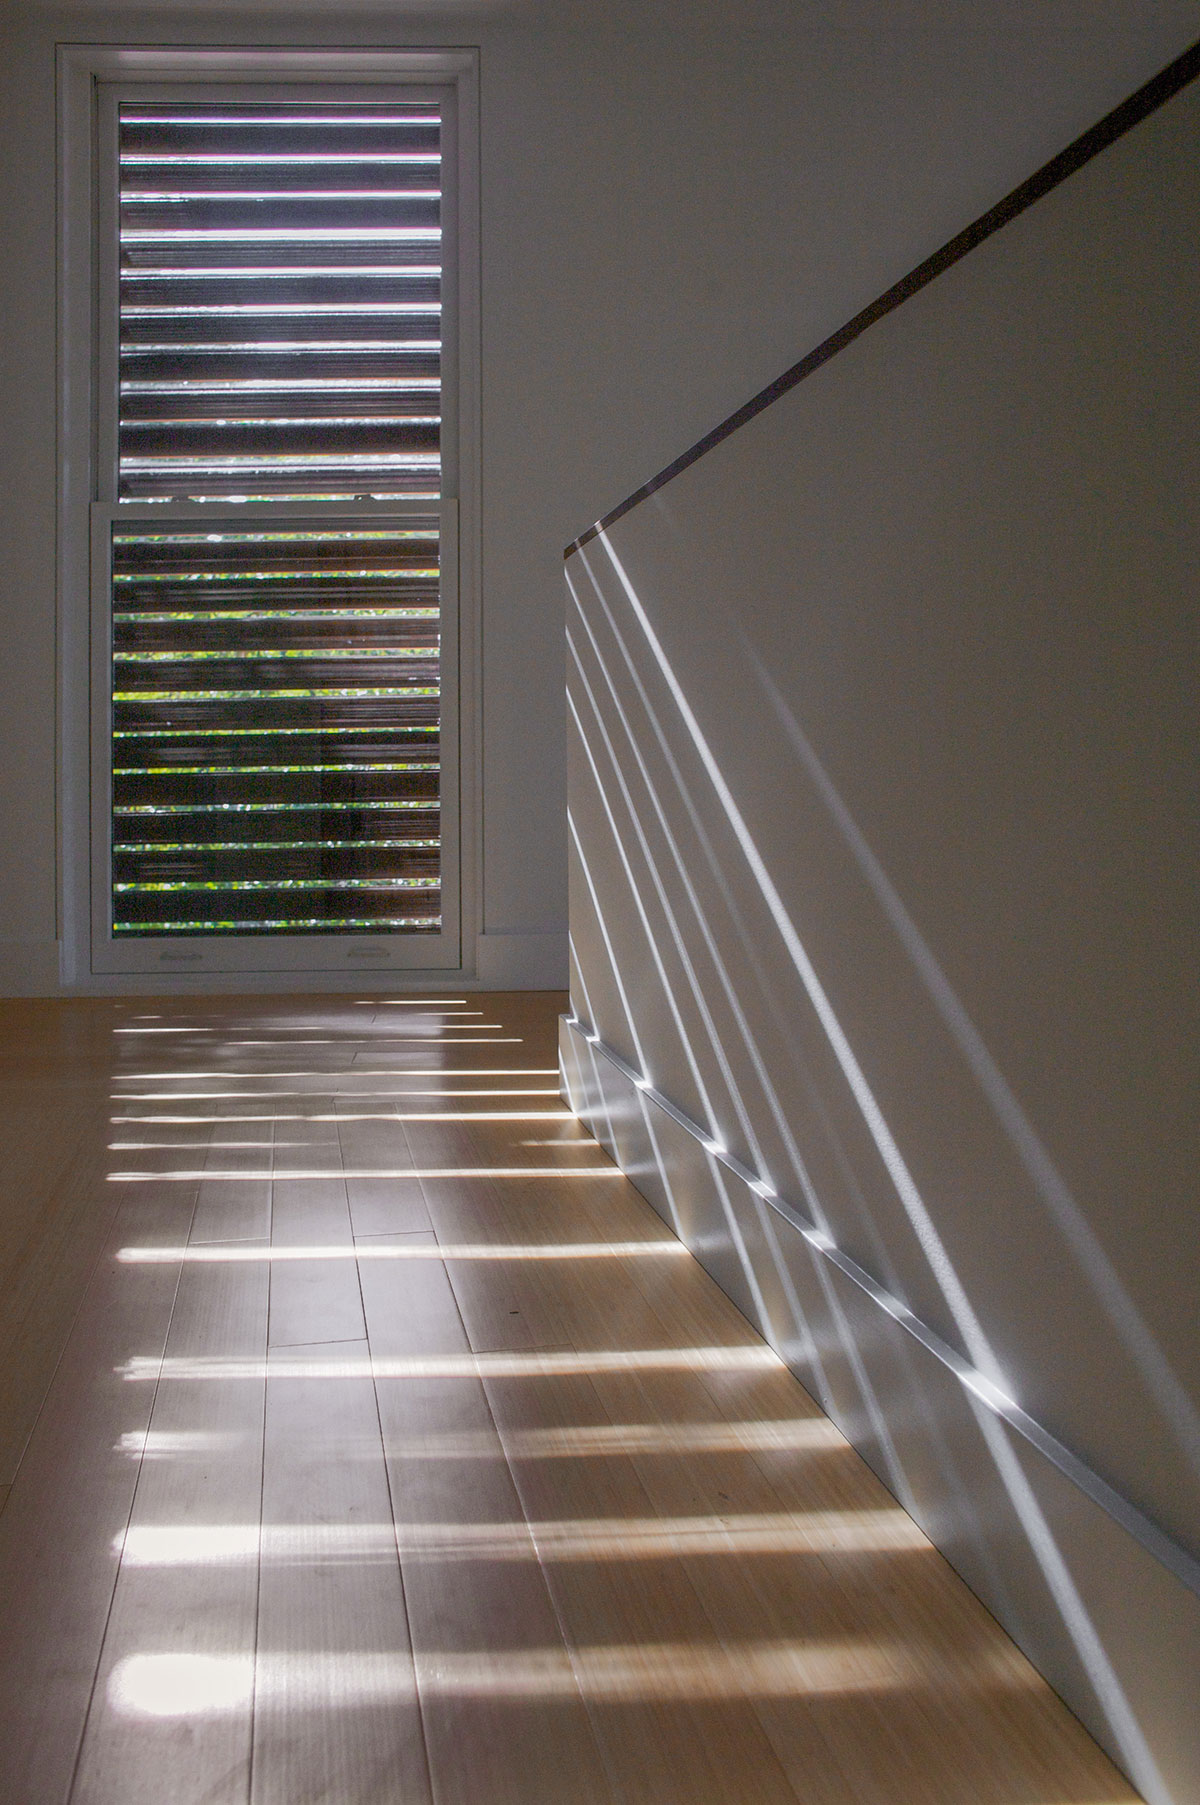 Light and shadow on the interior of the sustainable lake house project in Omena, Michigan designed by the architecture studio Danny Forster & Architecture